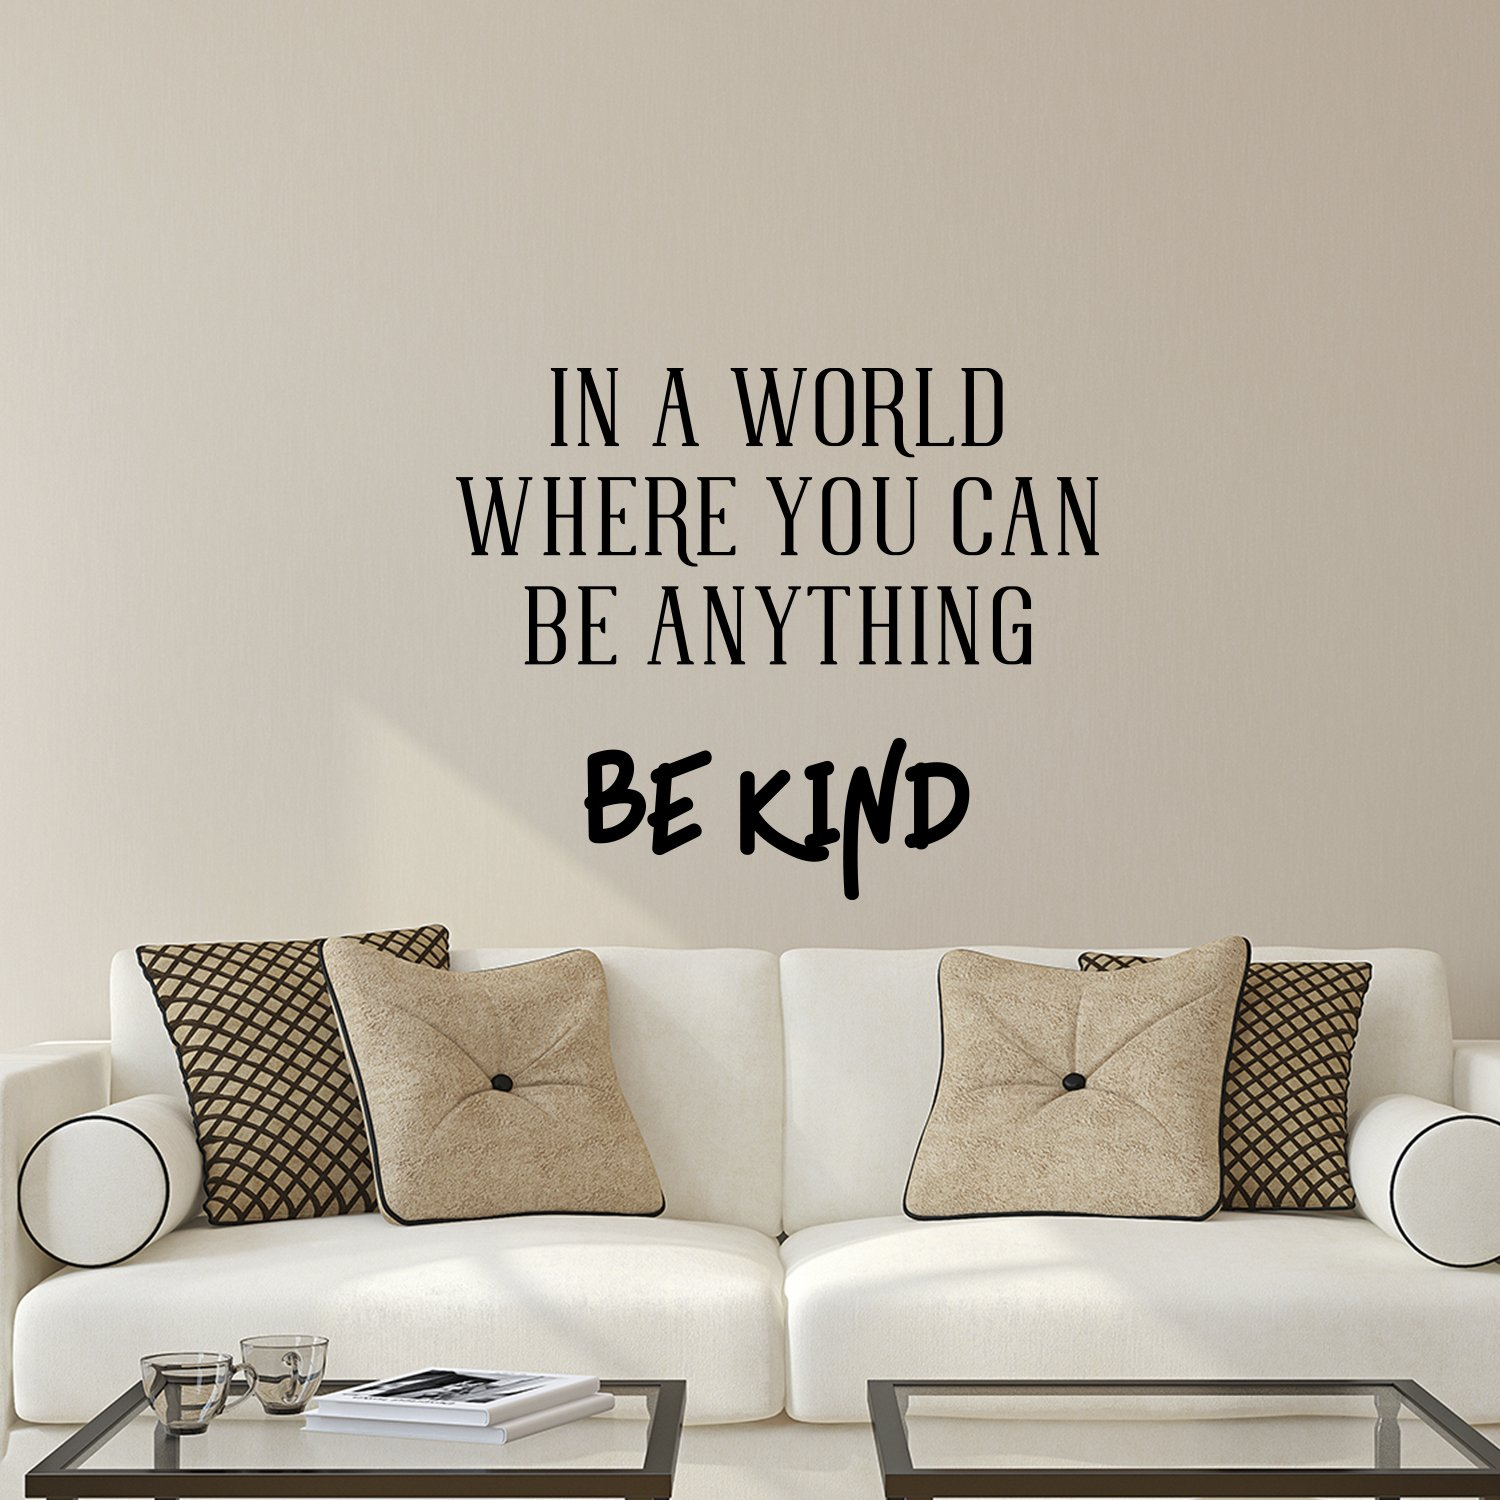 Vinyl Wall Art Decal - In A World Where You Can Be Anything Be Kind - 19'' x 23'' - Inspirational Modern Home Office Bedroom Living Room Work Apartment Decor Motivational Adhesive (19'' x 23'', Black)